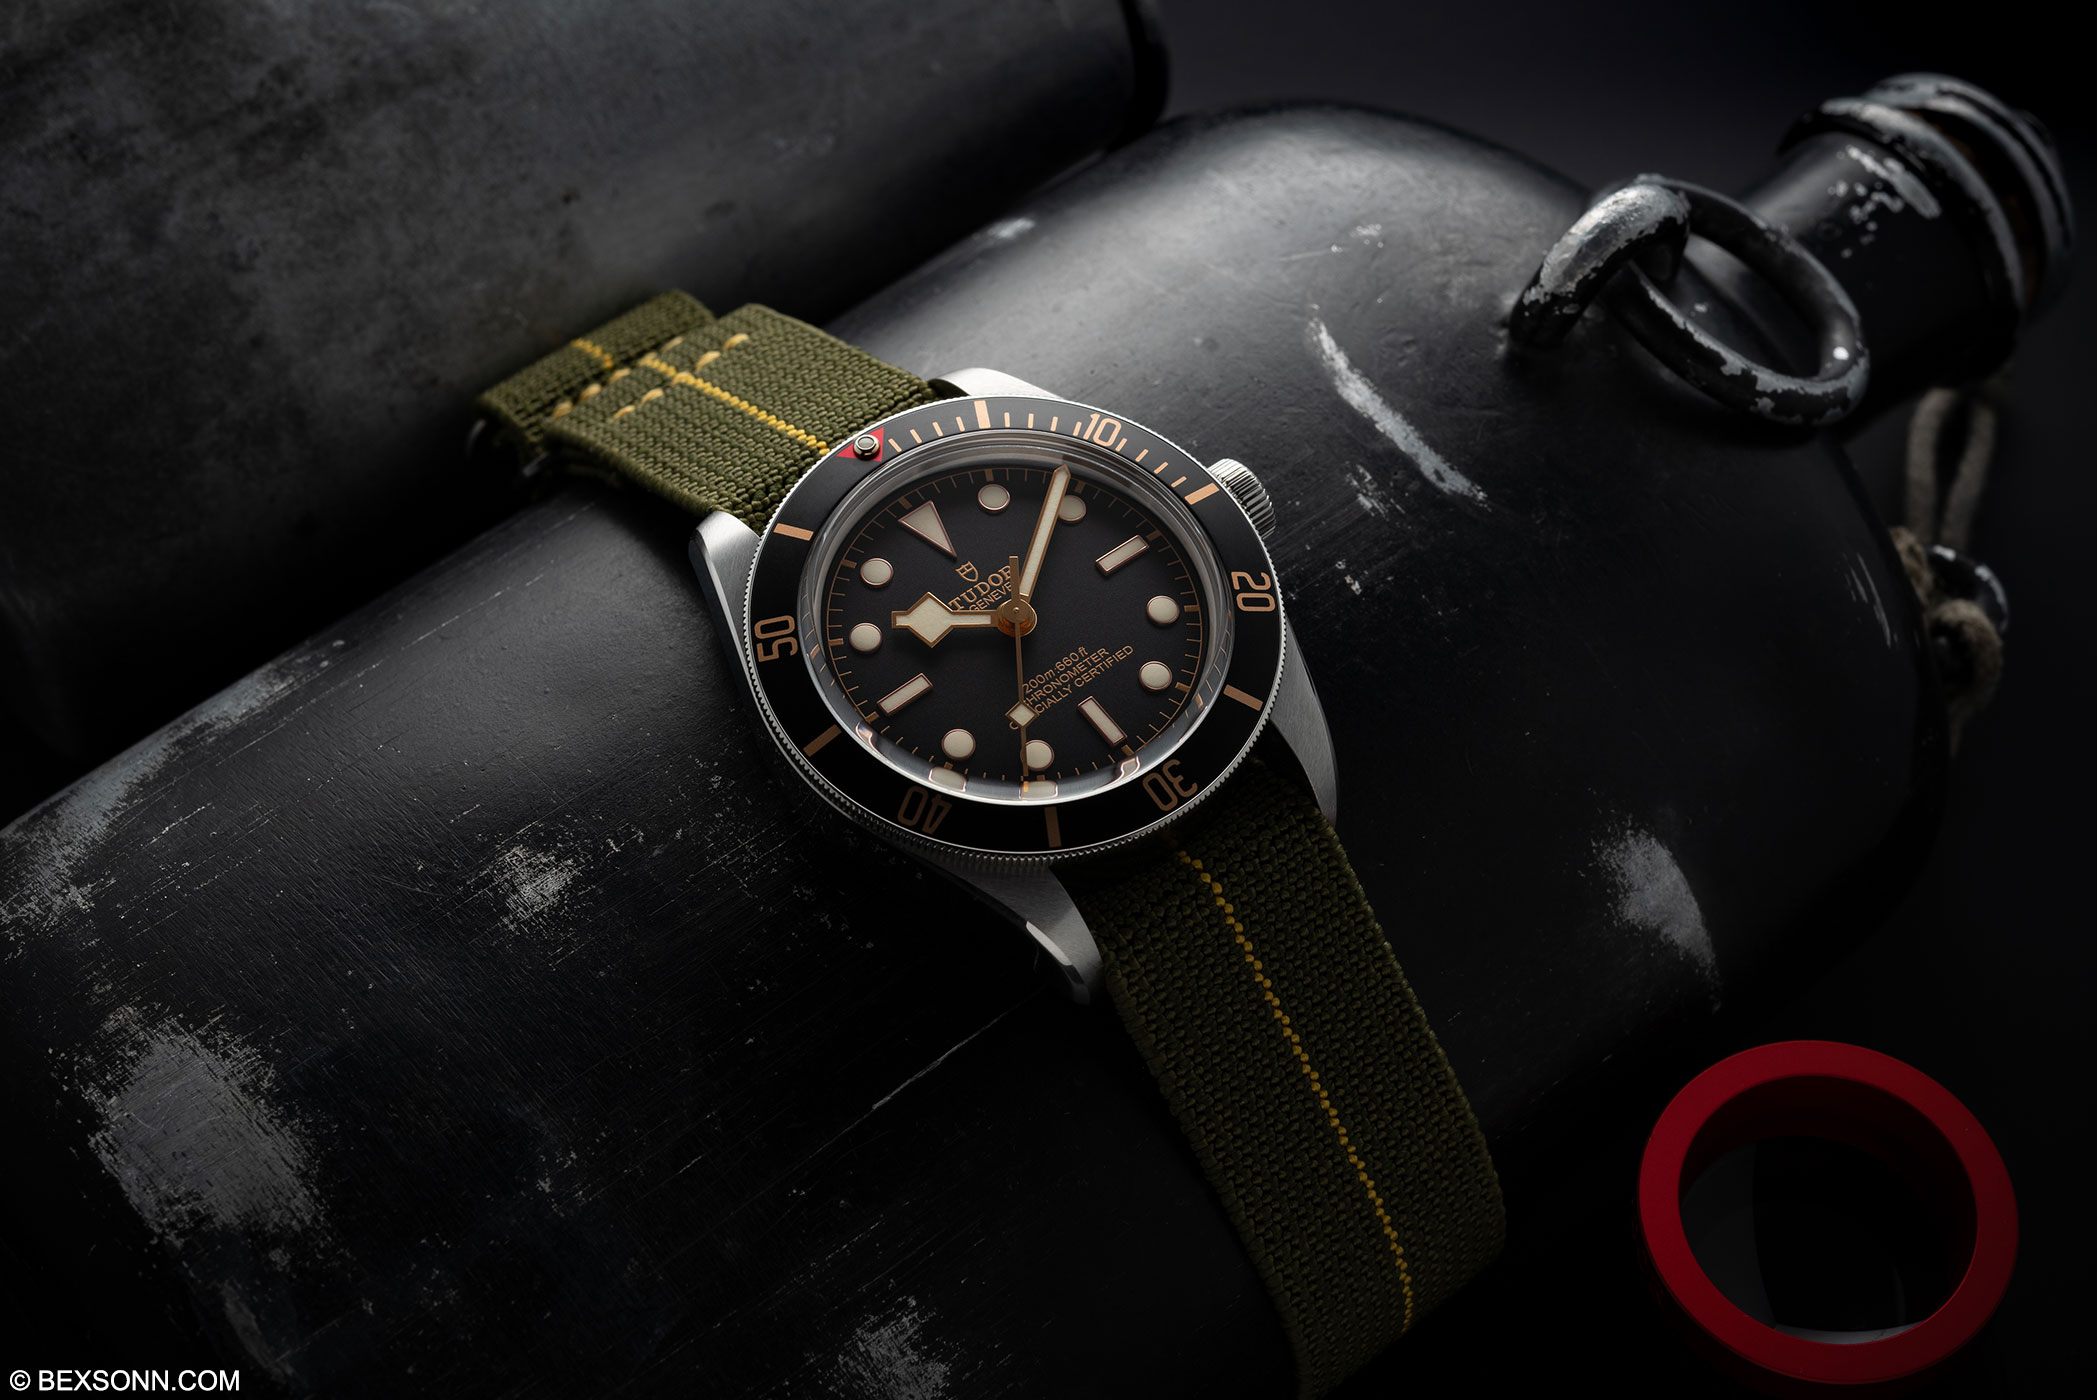 The Tudor Black Bay Fifty Eight Bexsonn